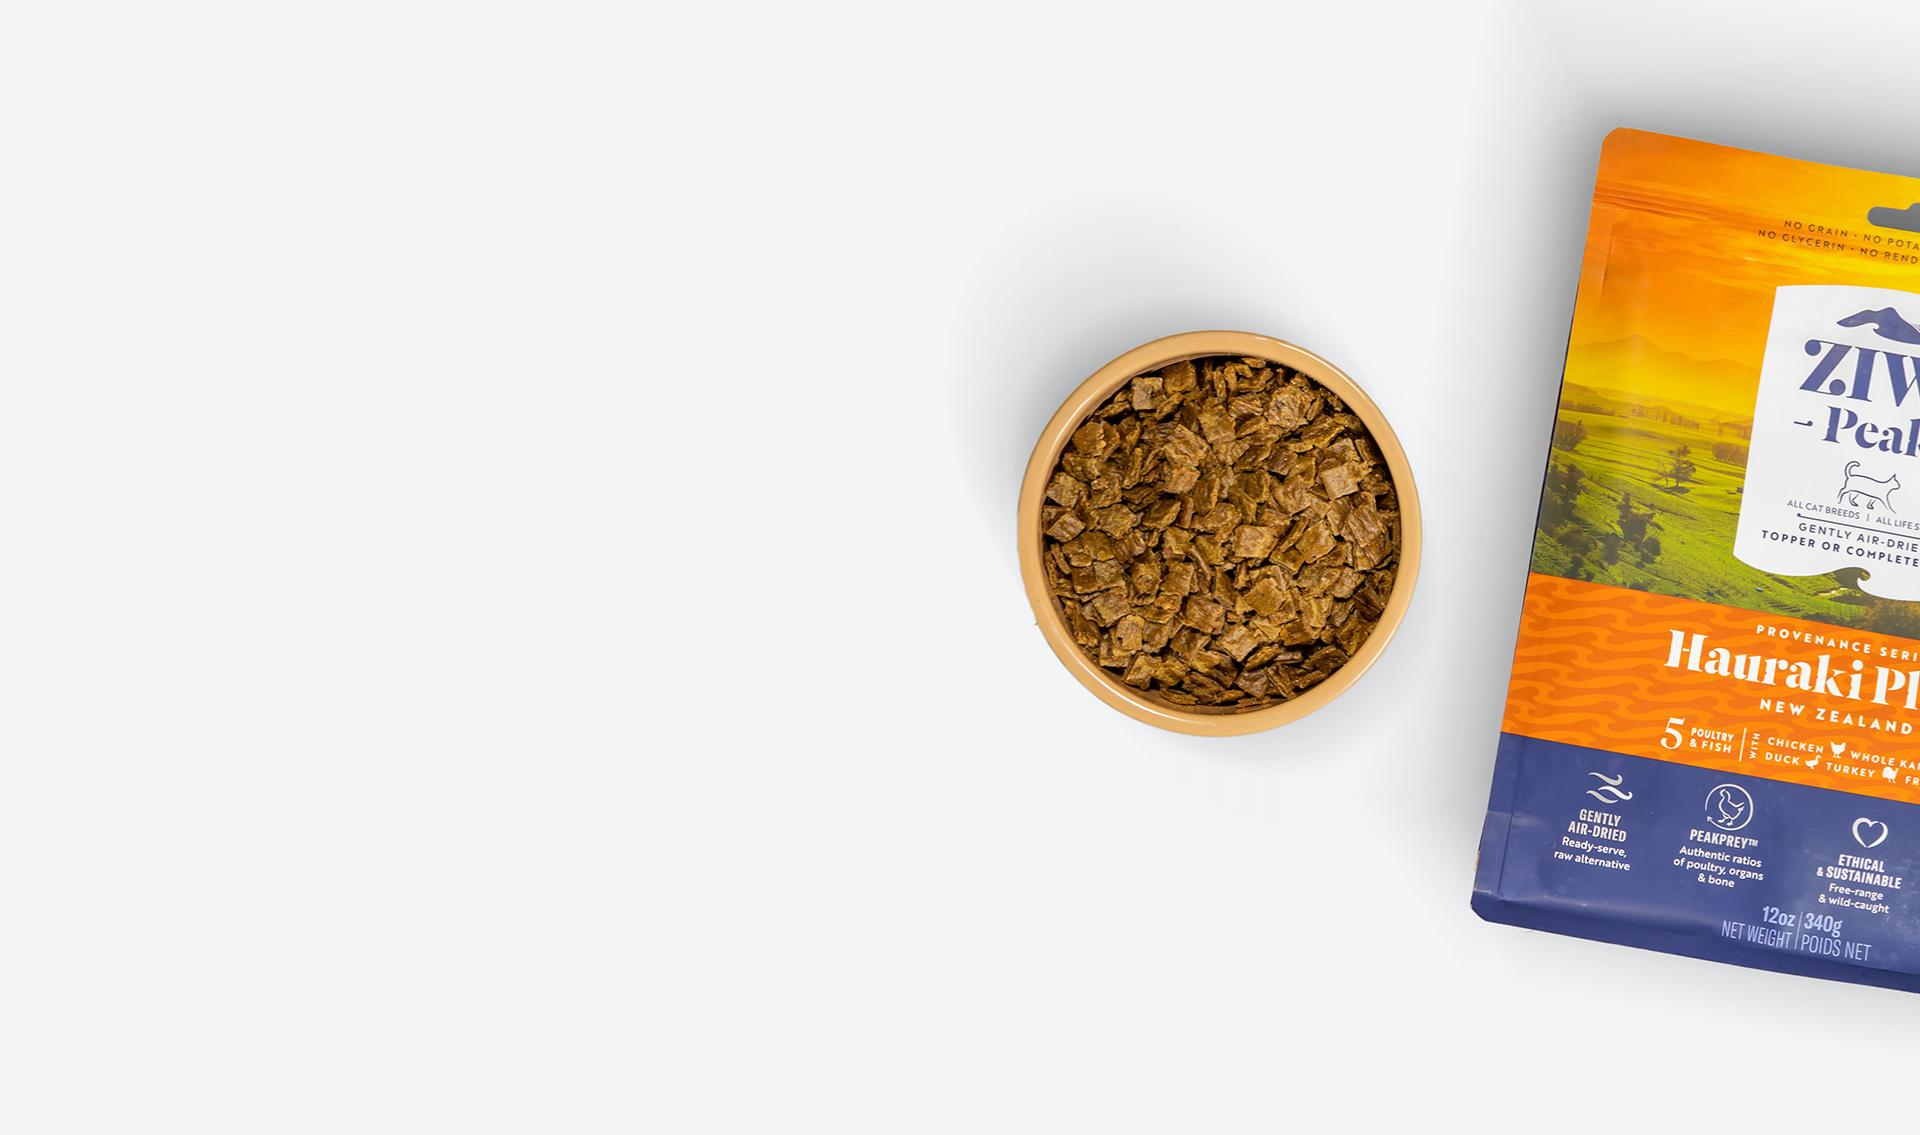 ZIWI Pet Food made from natural air-dried ingredients